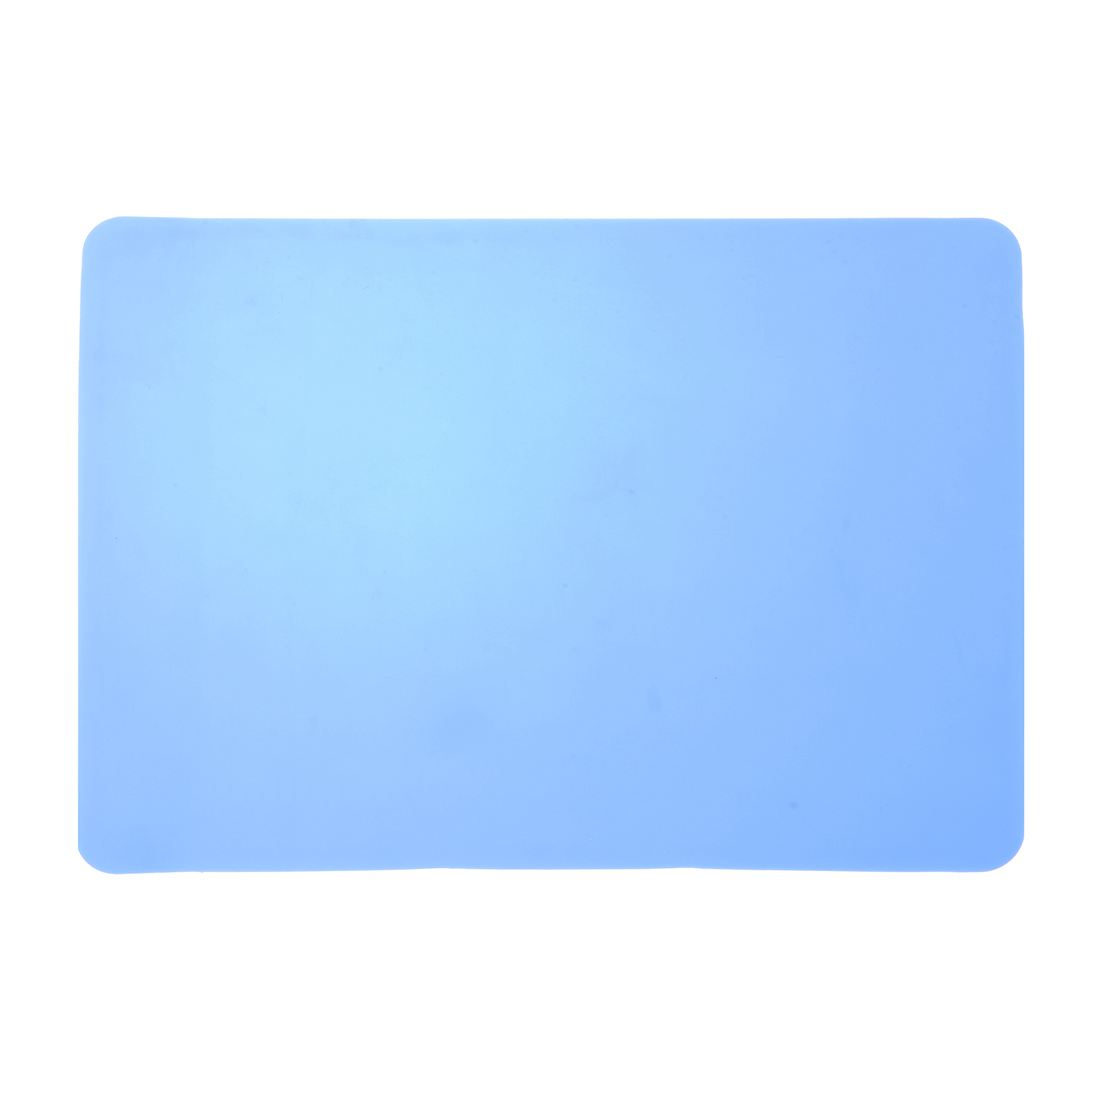 Rectangle sky blue Silicone Nonslip Mouse Pad Mat for Computer